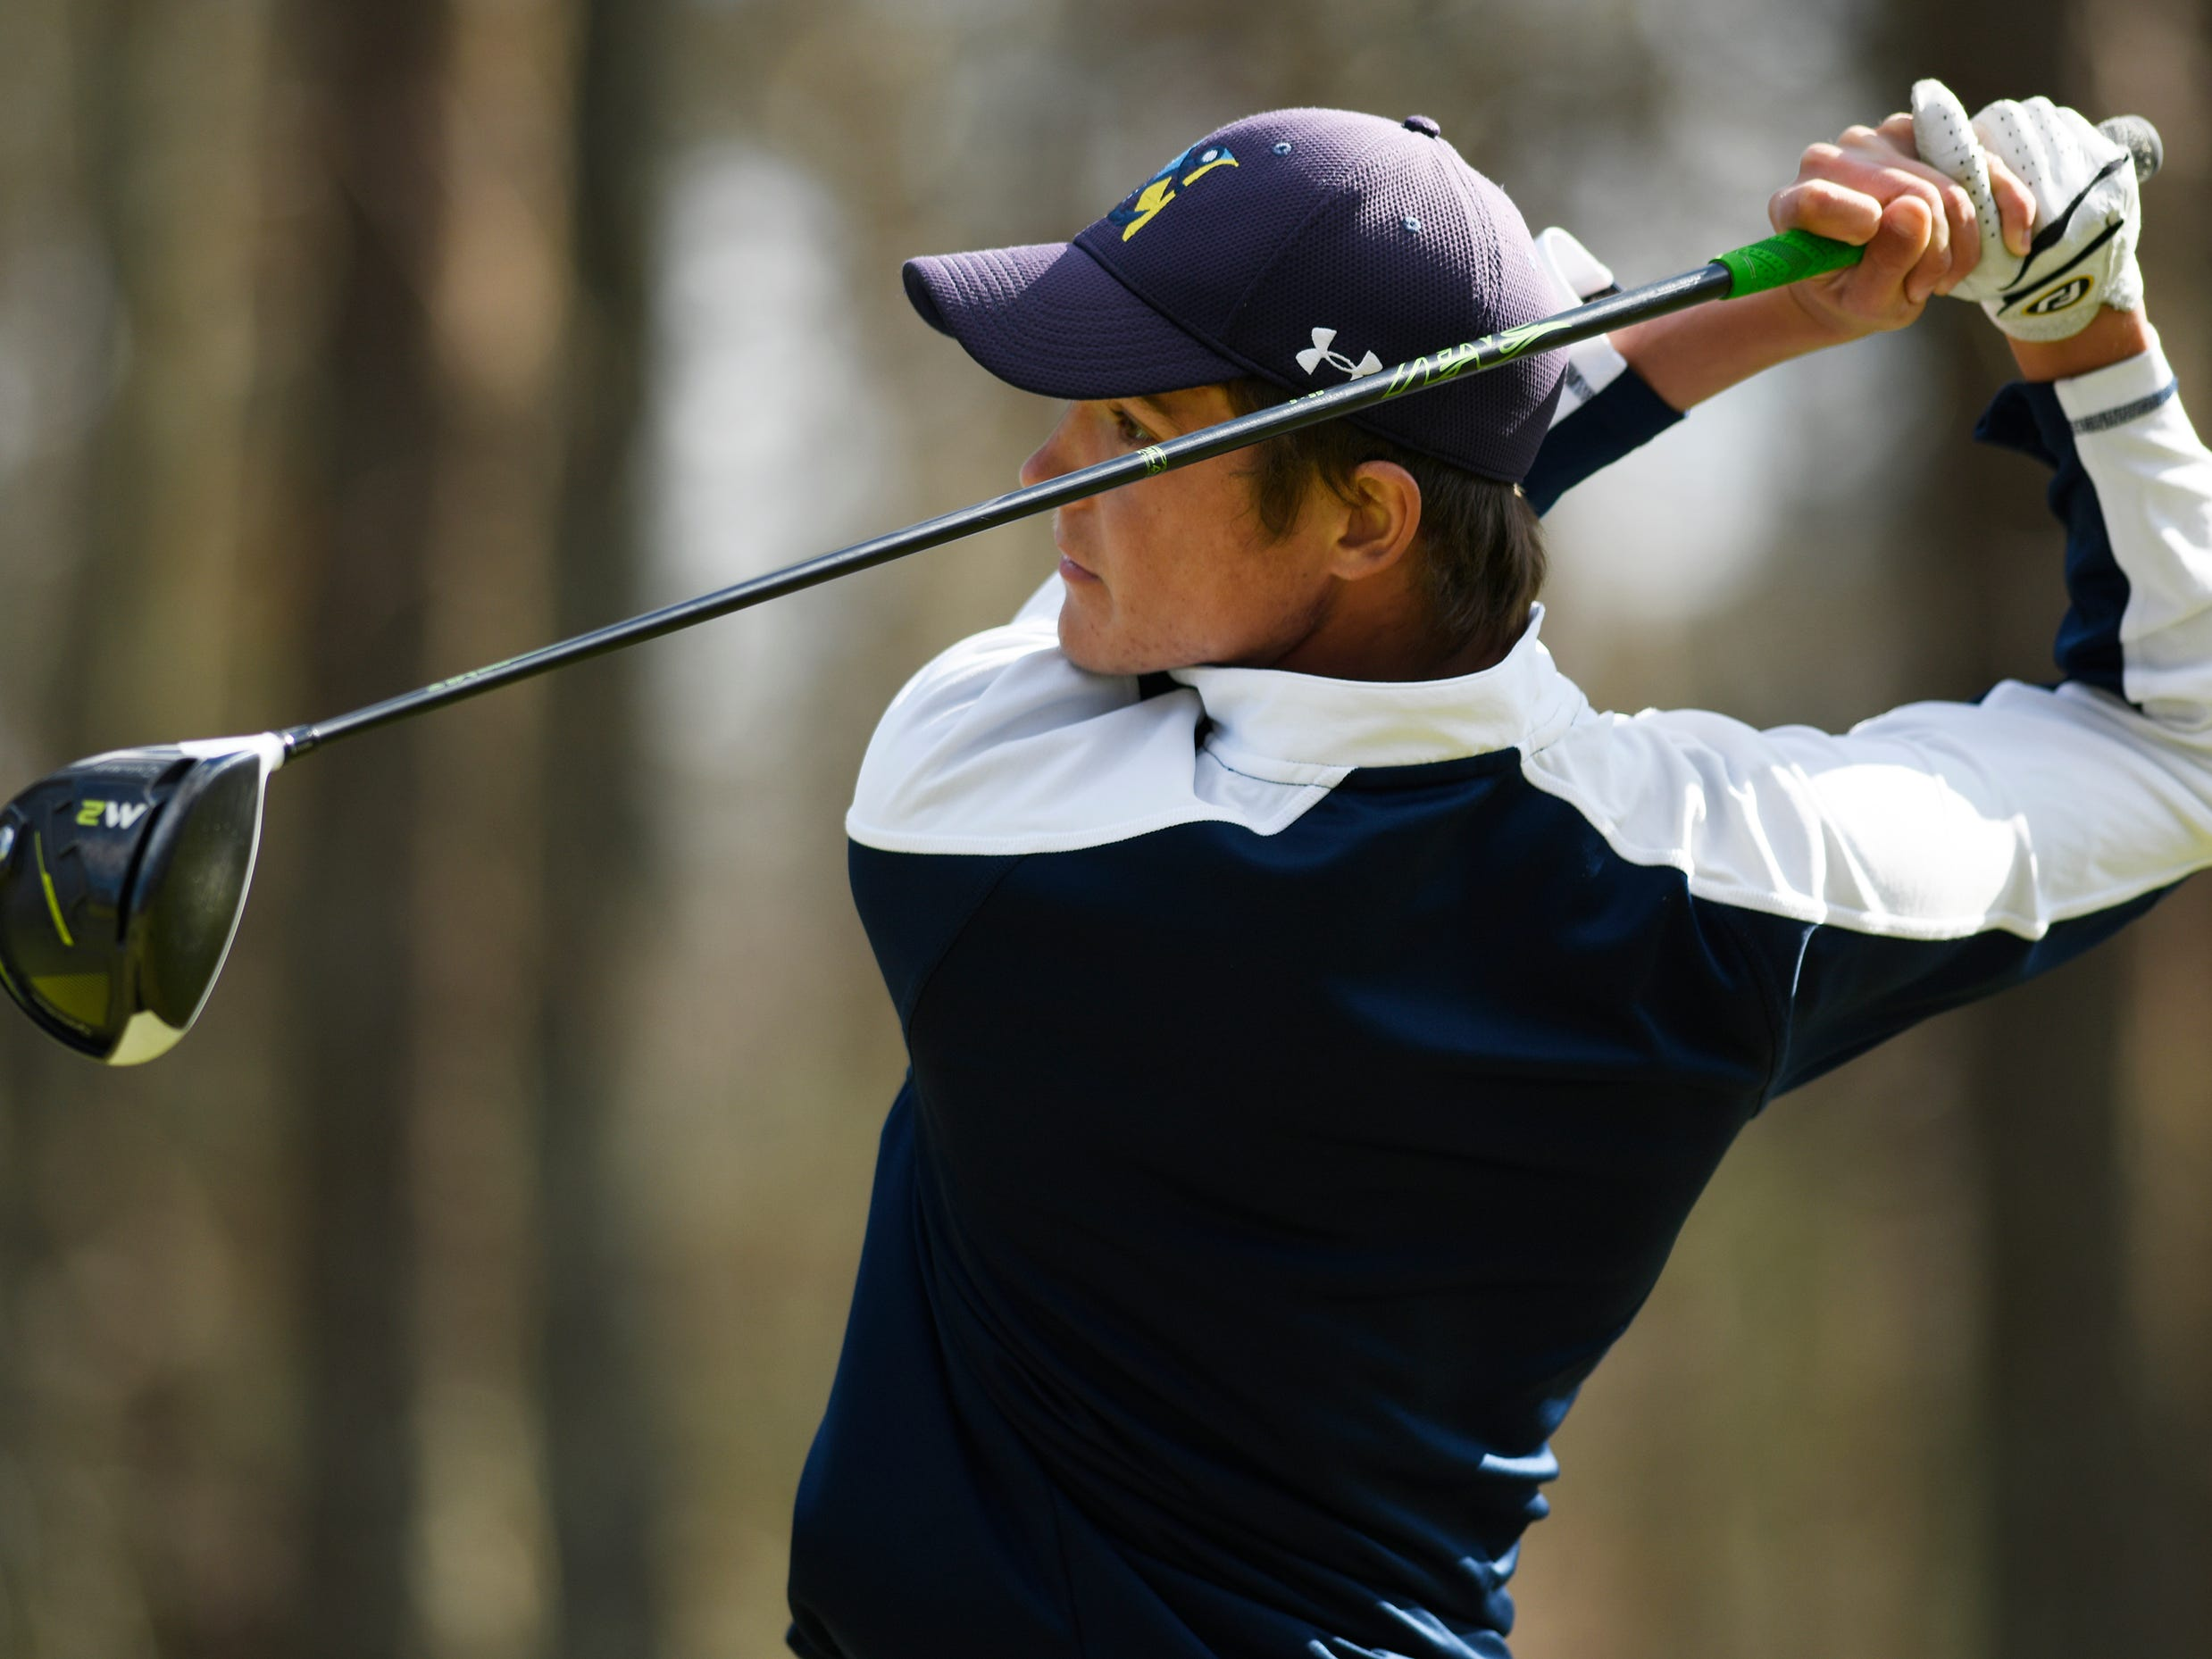 Connor Bekefi of Tome River North competes at the Ocean County Tournament on April 15, 2019,  at Sea Oaks in Little Egg Harbor. Bekefi emerged as the individual champion with a 3-over-par 75, four shots better than teammate Leo Kane. Toms River North successfully defended its team title, posting a total of 336, which was 18 shots better than Southern. Brick Memorial finished third.